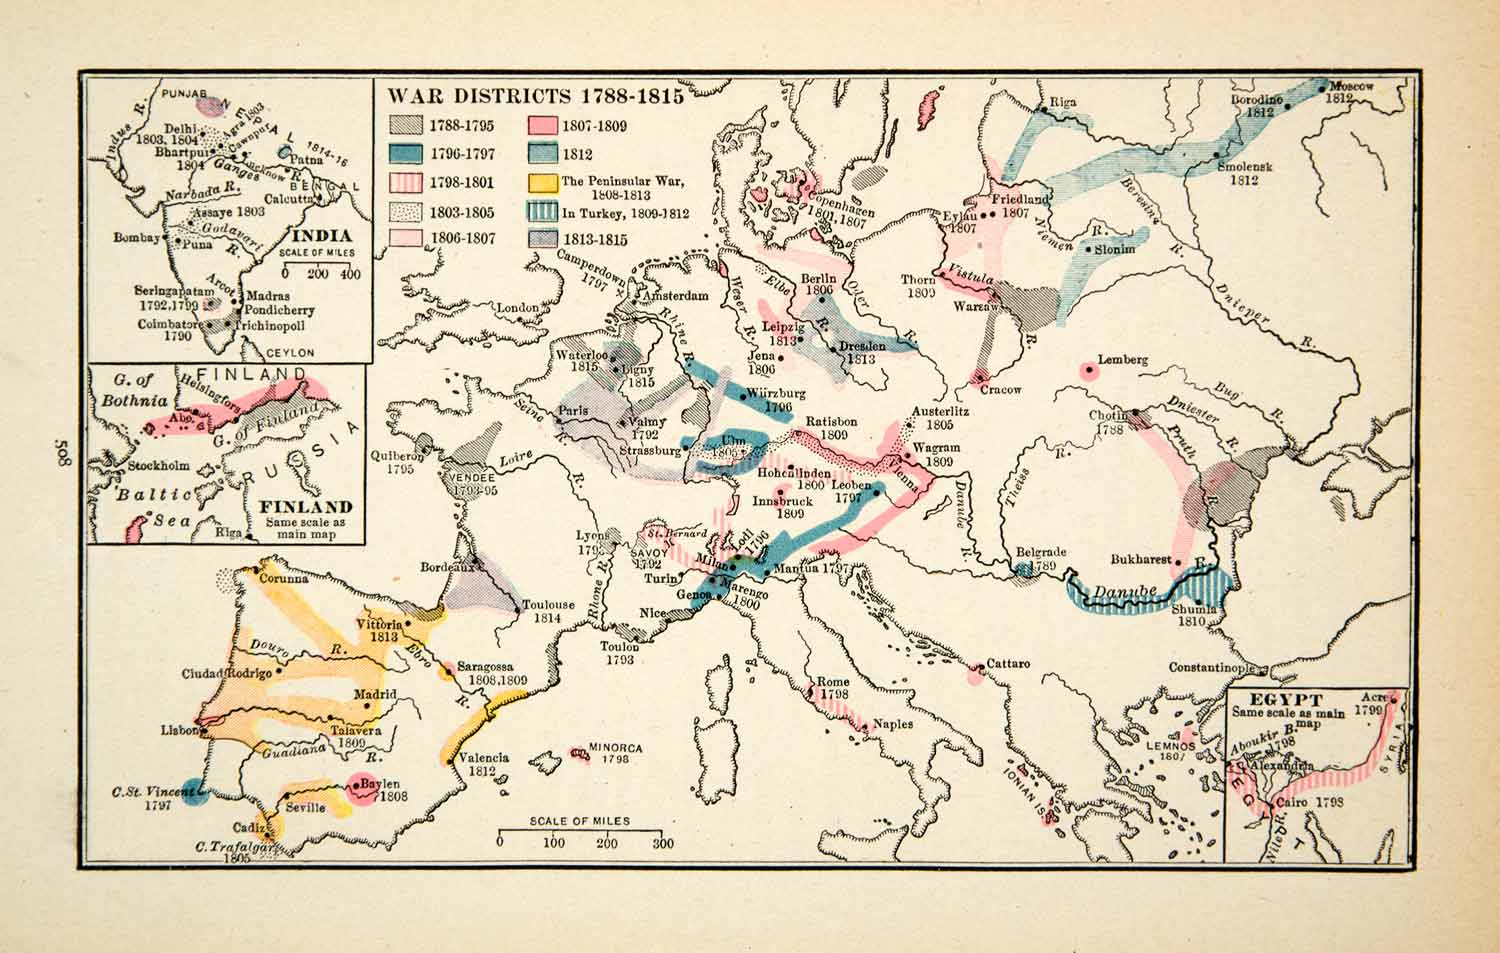 Districts Of France Map.1918 Print Map Europe War Districts Locations Germany France Spain Xeca1